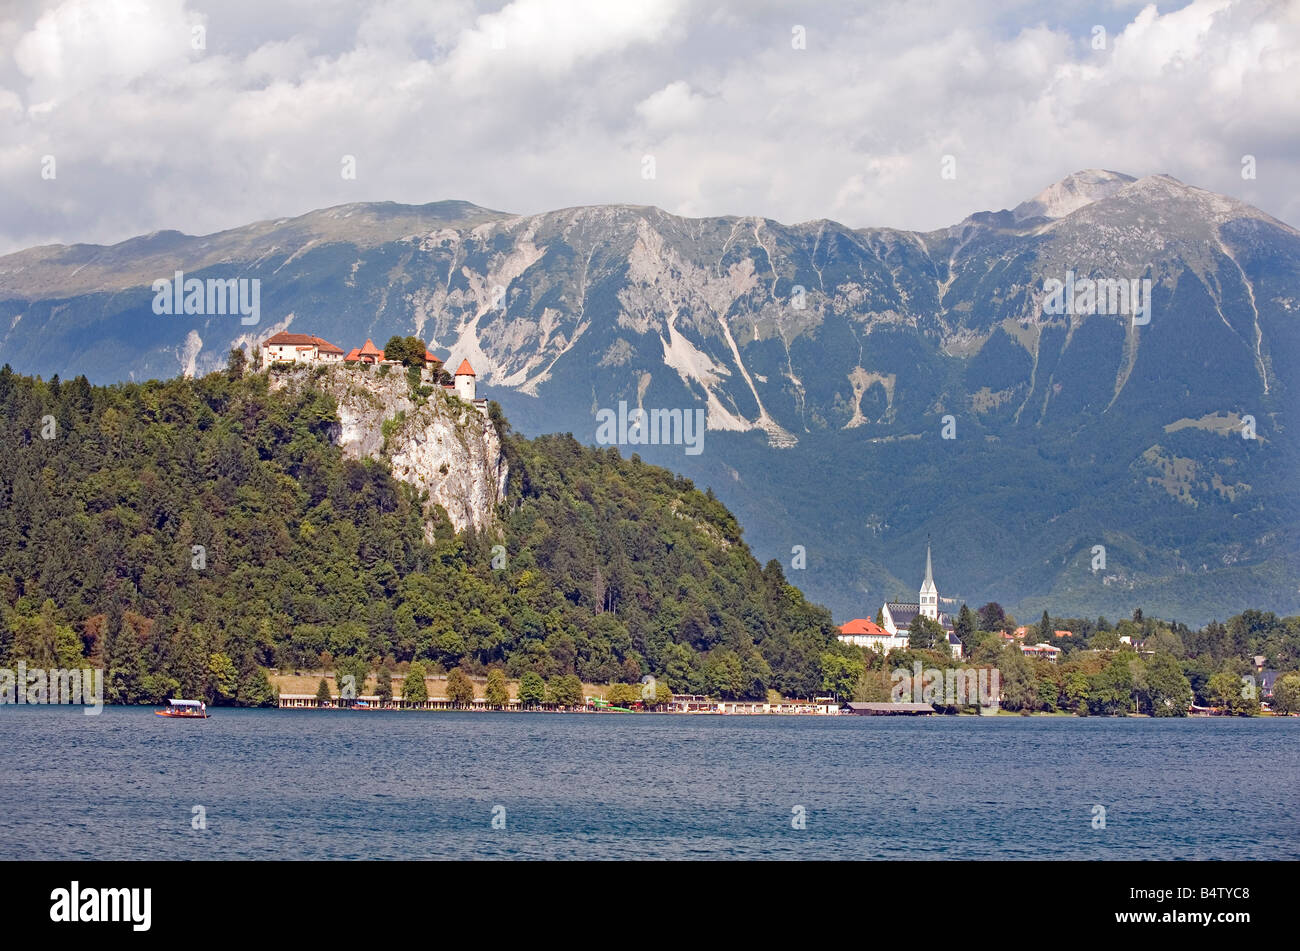 Lake Bled Republic of Slovenia Medieval castle Bled on the rock and mountain Stol in the background - Stock Image